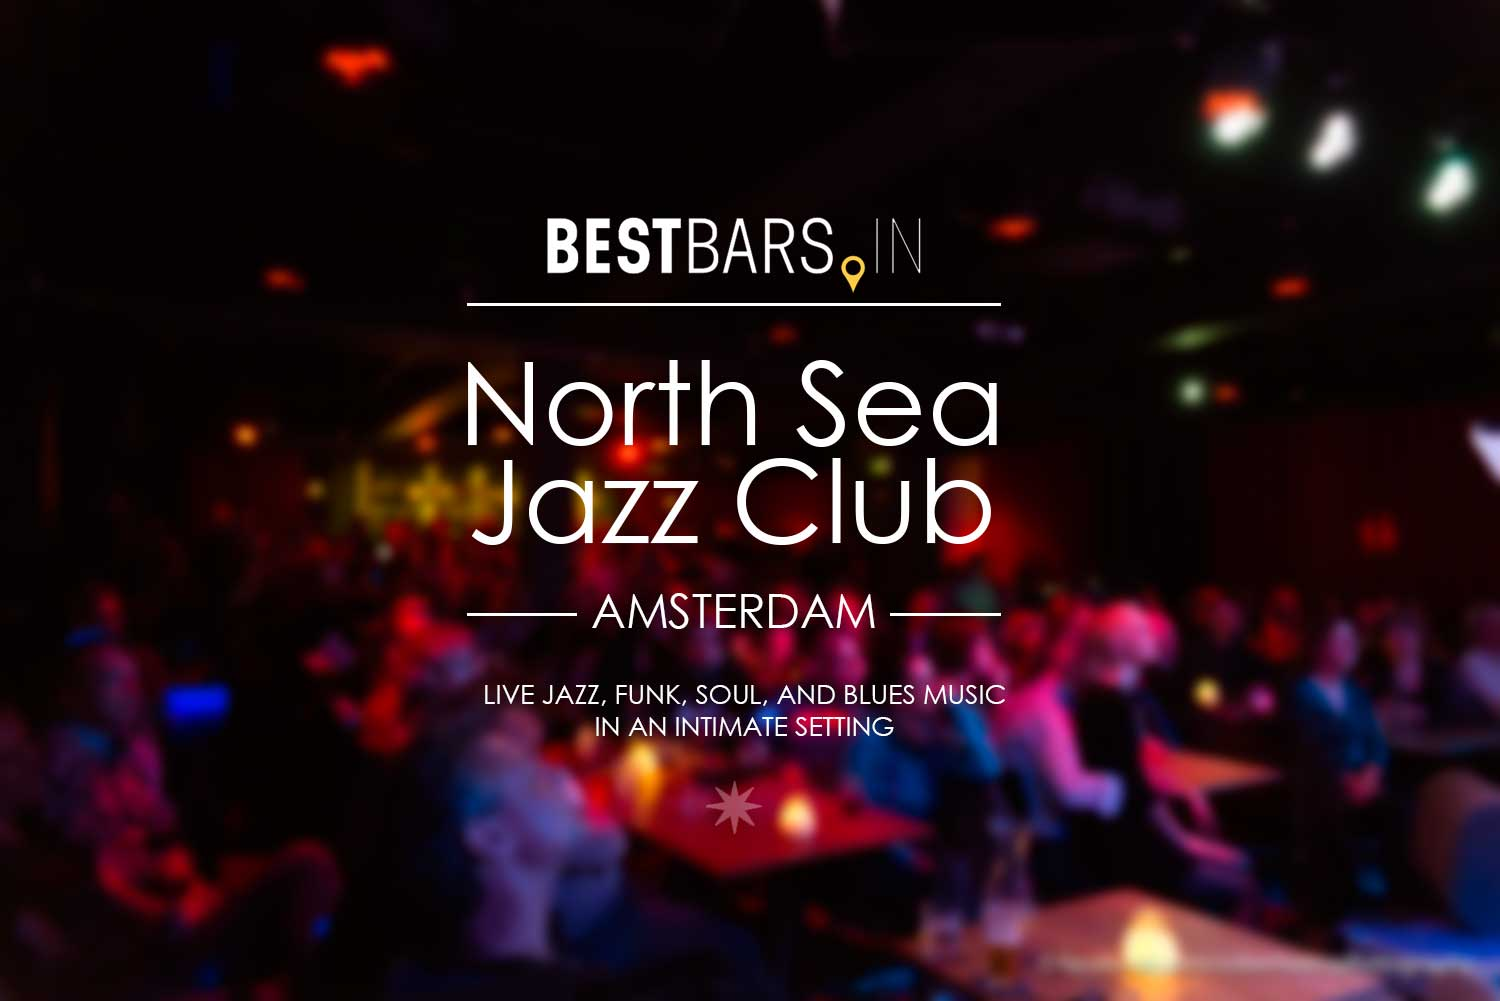 North Sea Jazz Club - best jazz club in Amsterdam